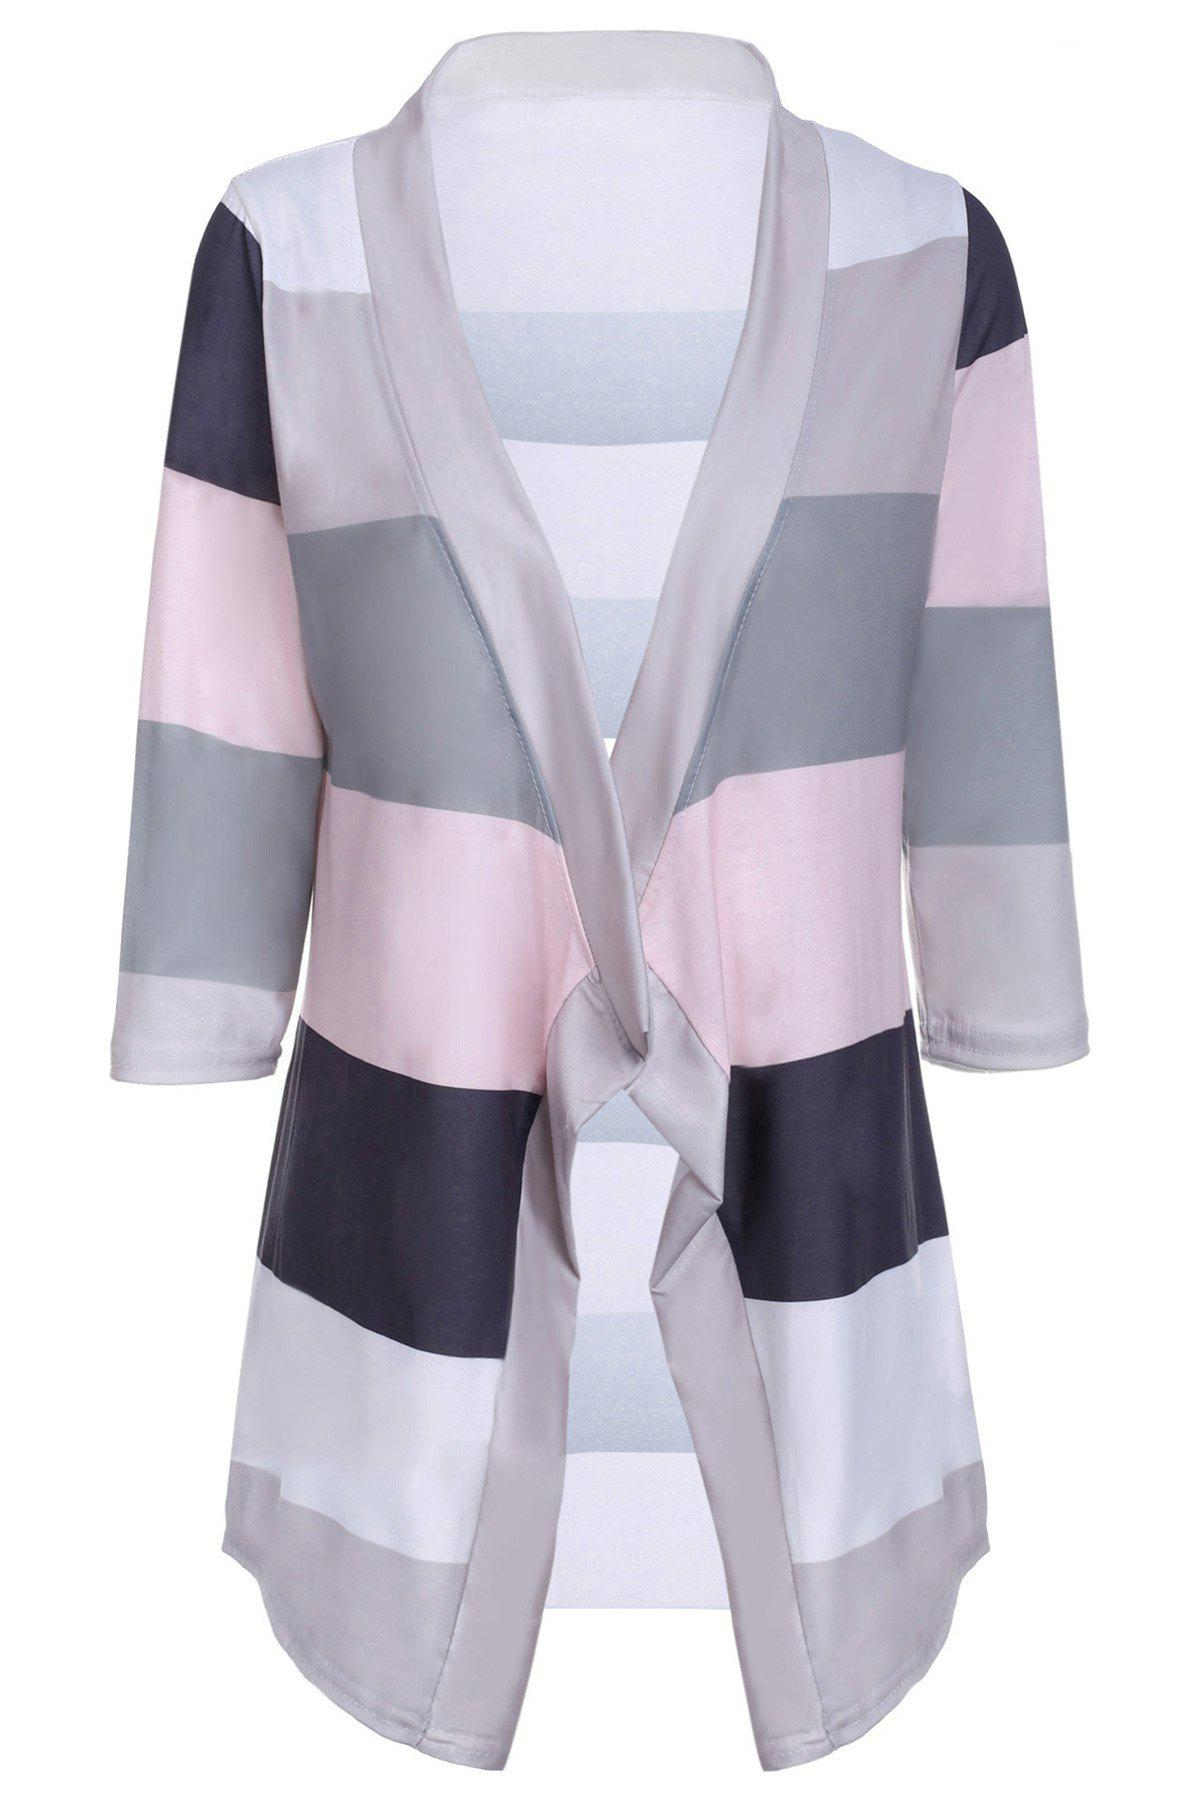 Chic Striped Collarless 3/4 Sleeve Irregular Asymmetric Cardigan For Women 48v 3000w electric bike battery 48v 40ah samsung electric bicycle lithium ion battery with bms charger 48v battery pack 48v 8fun page 1